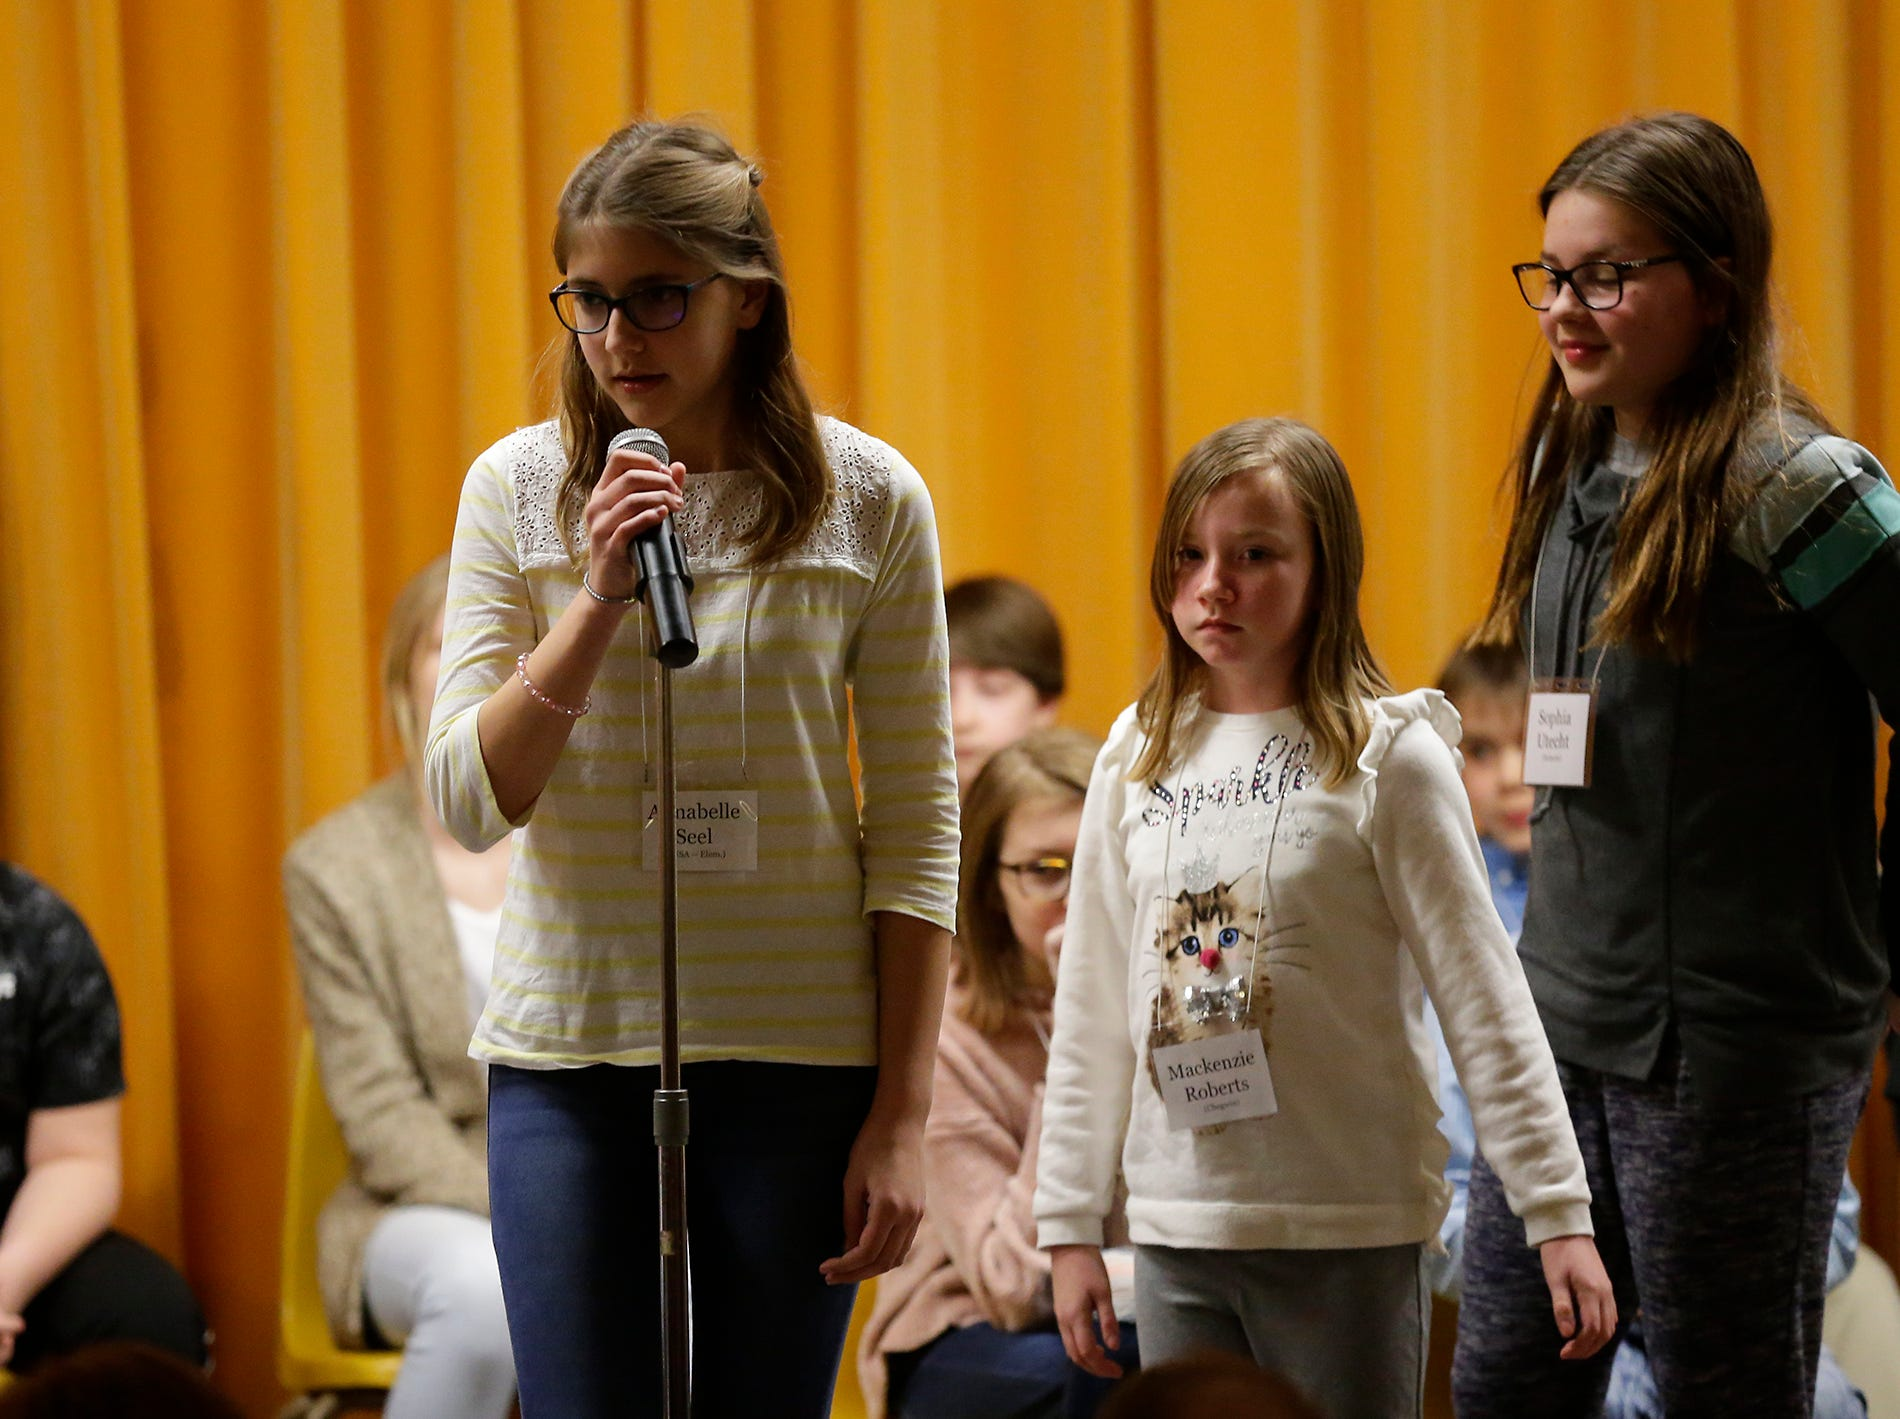 Annabelle Seel of St. Mary's Springs Elementary competes in the Fond du Lac citywide spelling bee Tuesday, February 26, 2019 at These Middle School in Fond du Lac, Wis. Doug Raflik/USA TODAY NETWORK-Wisconsin